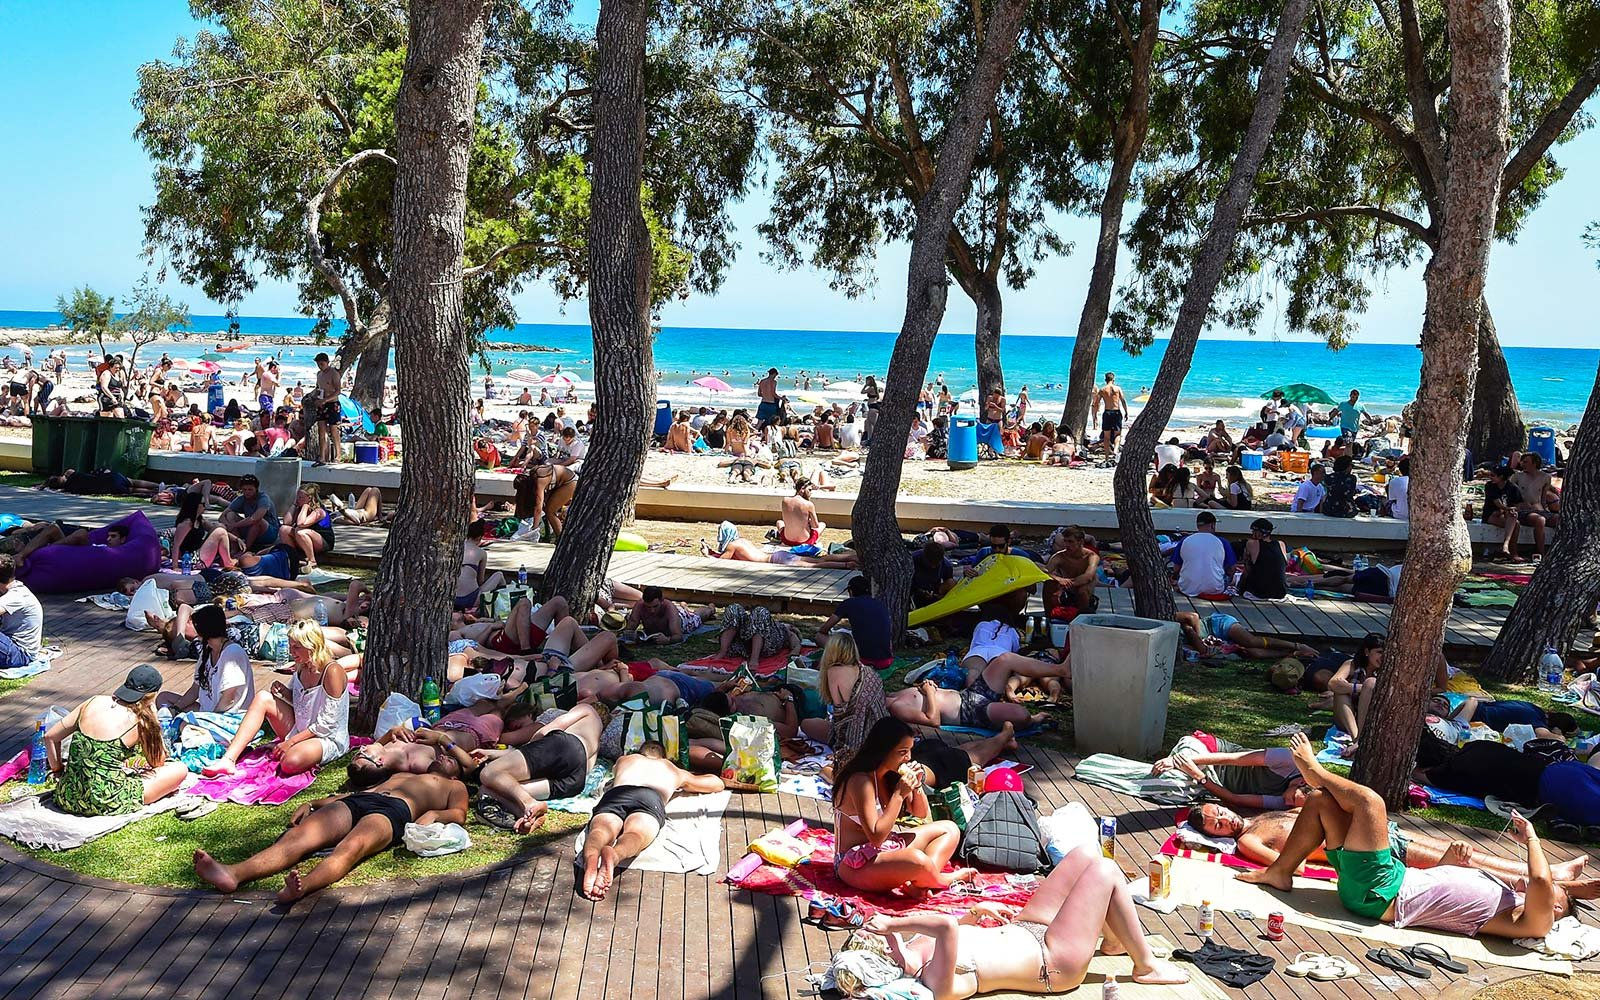 Revellers sleep on the grass near a beach on the fourth and last day of the Benicassim International Festival in Benicassim, in Castellon province, Spain